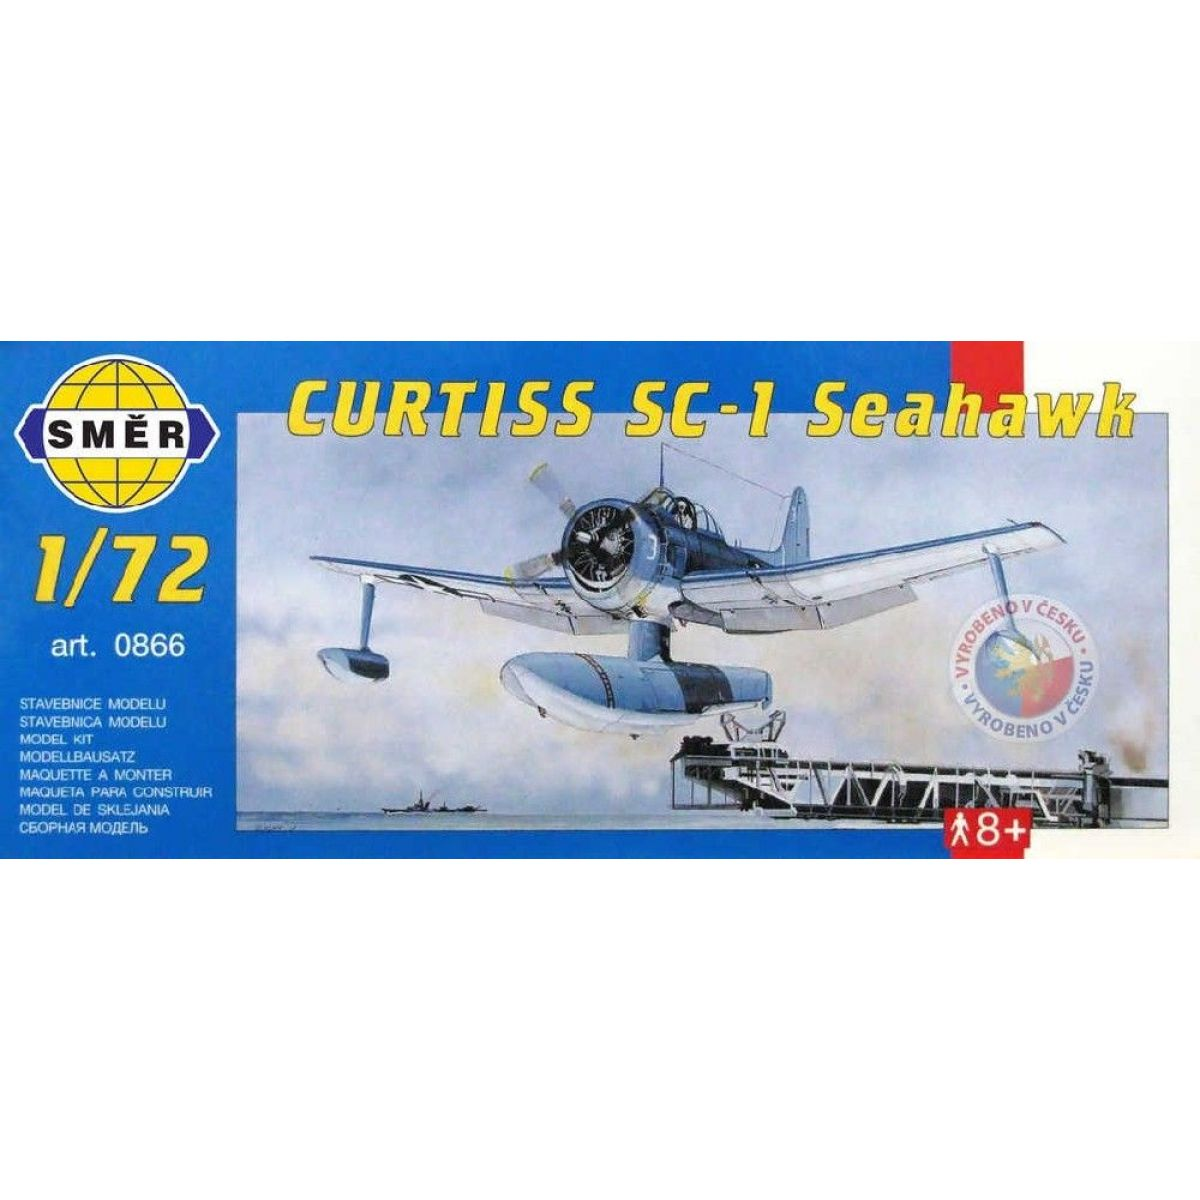 Smer Model Curtiss SC-1 Seahawk